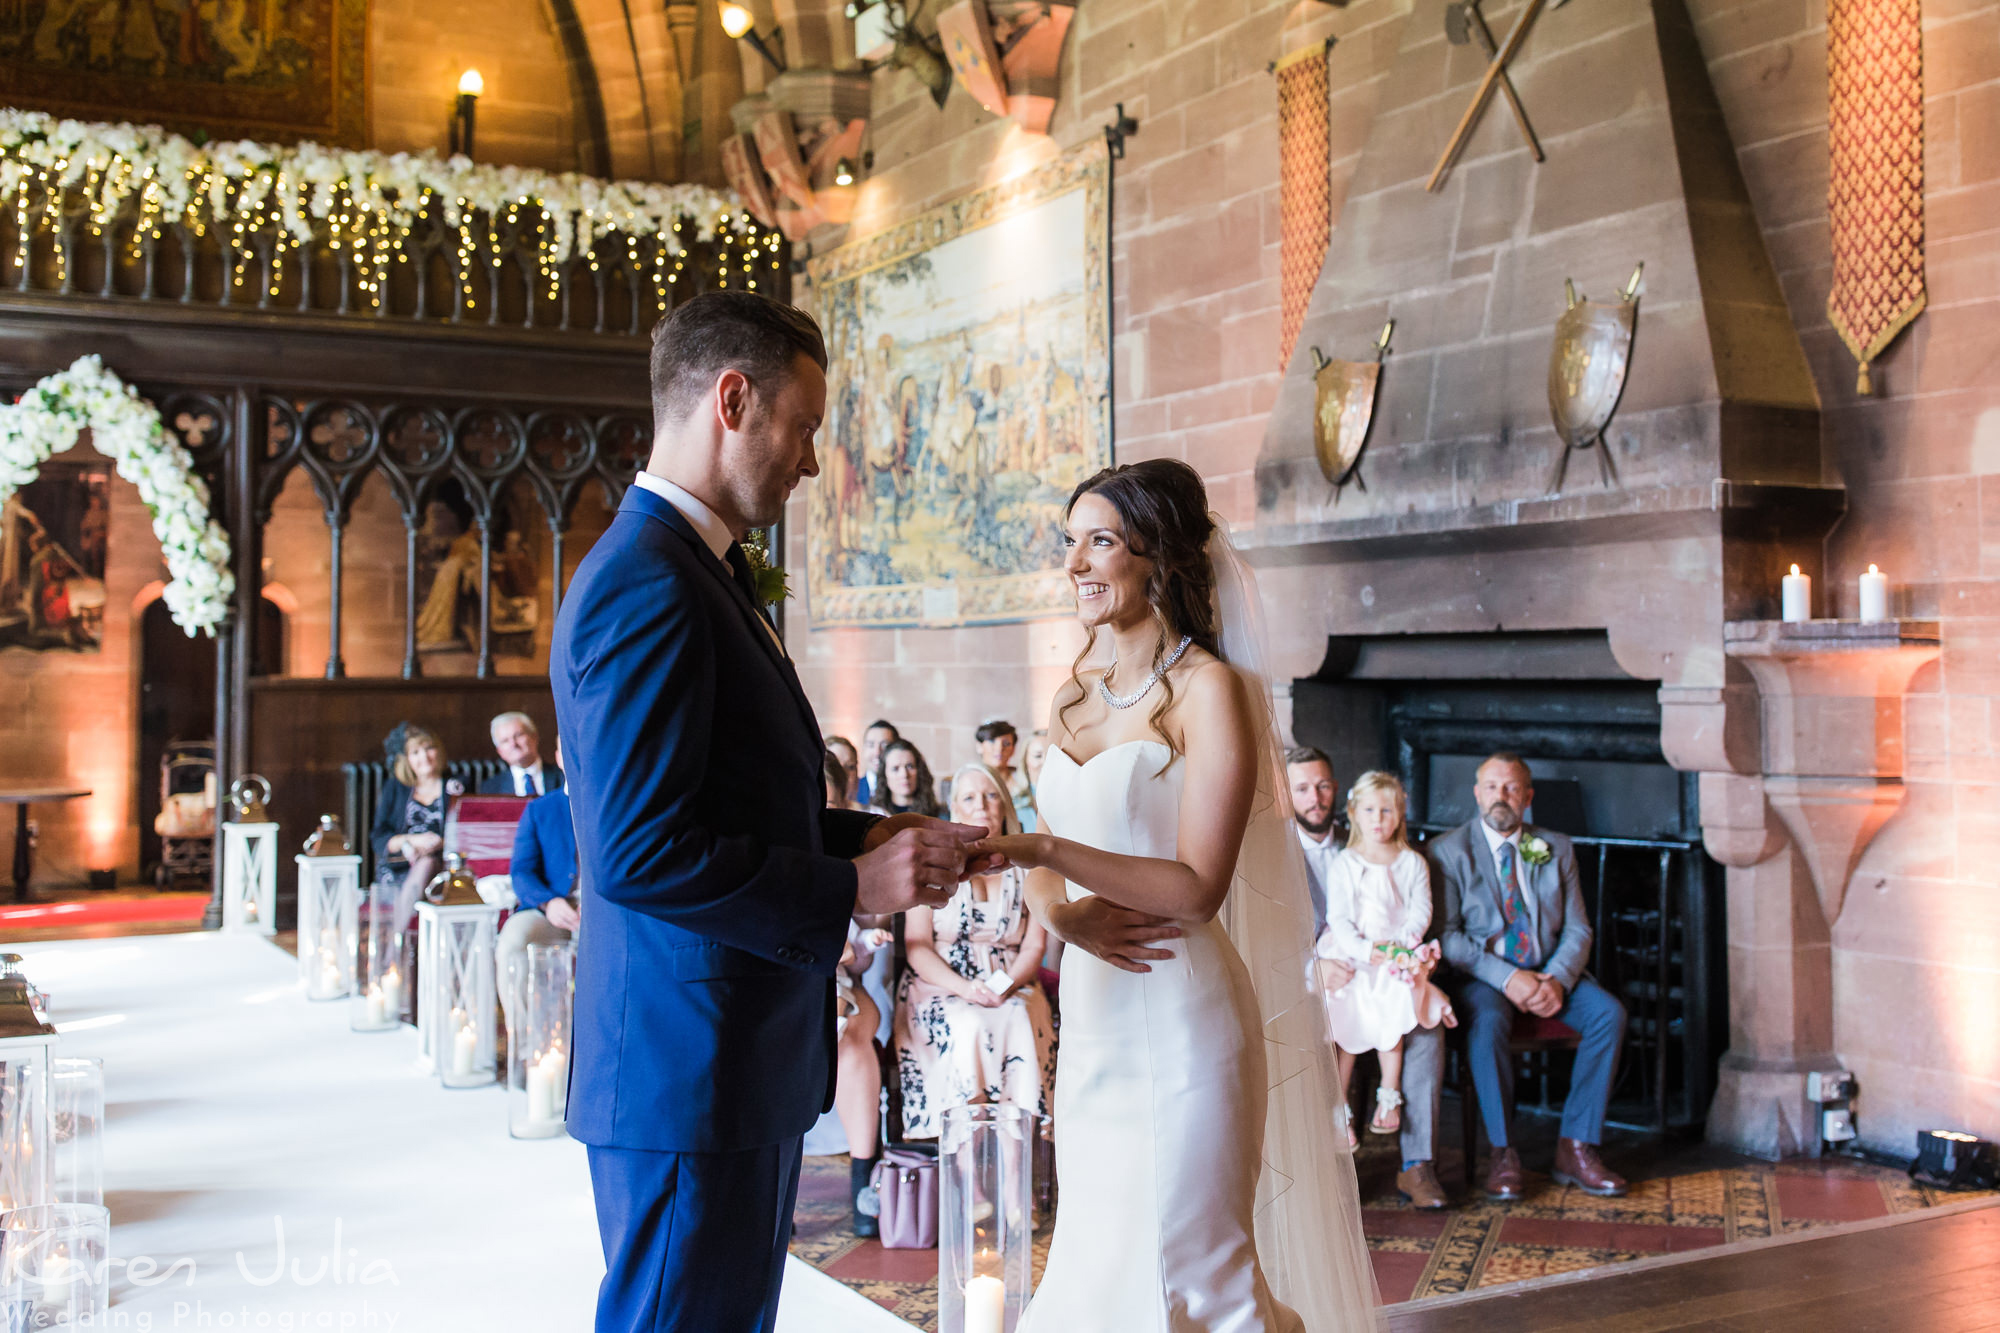 bride and groom exchange rings during wedding ceremony at Peckforton Castle